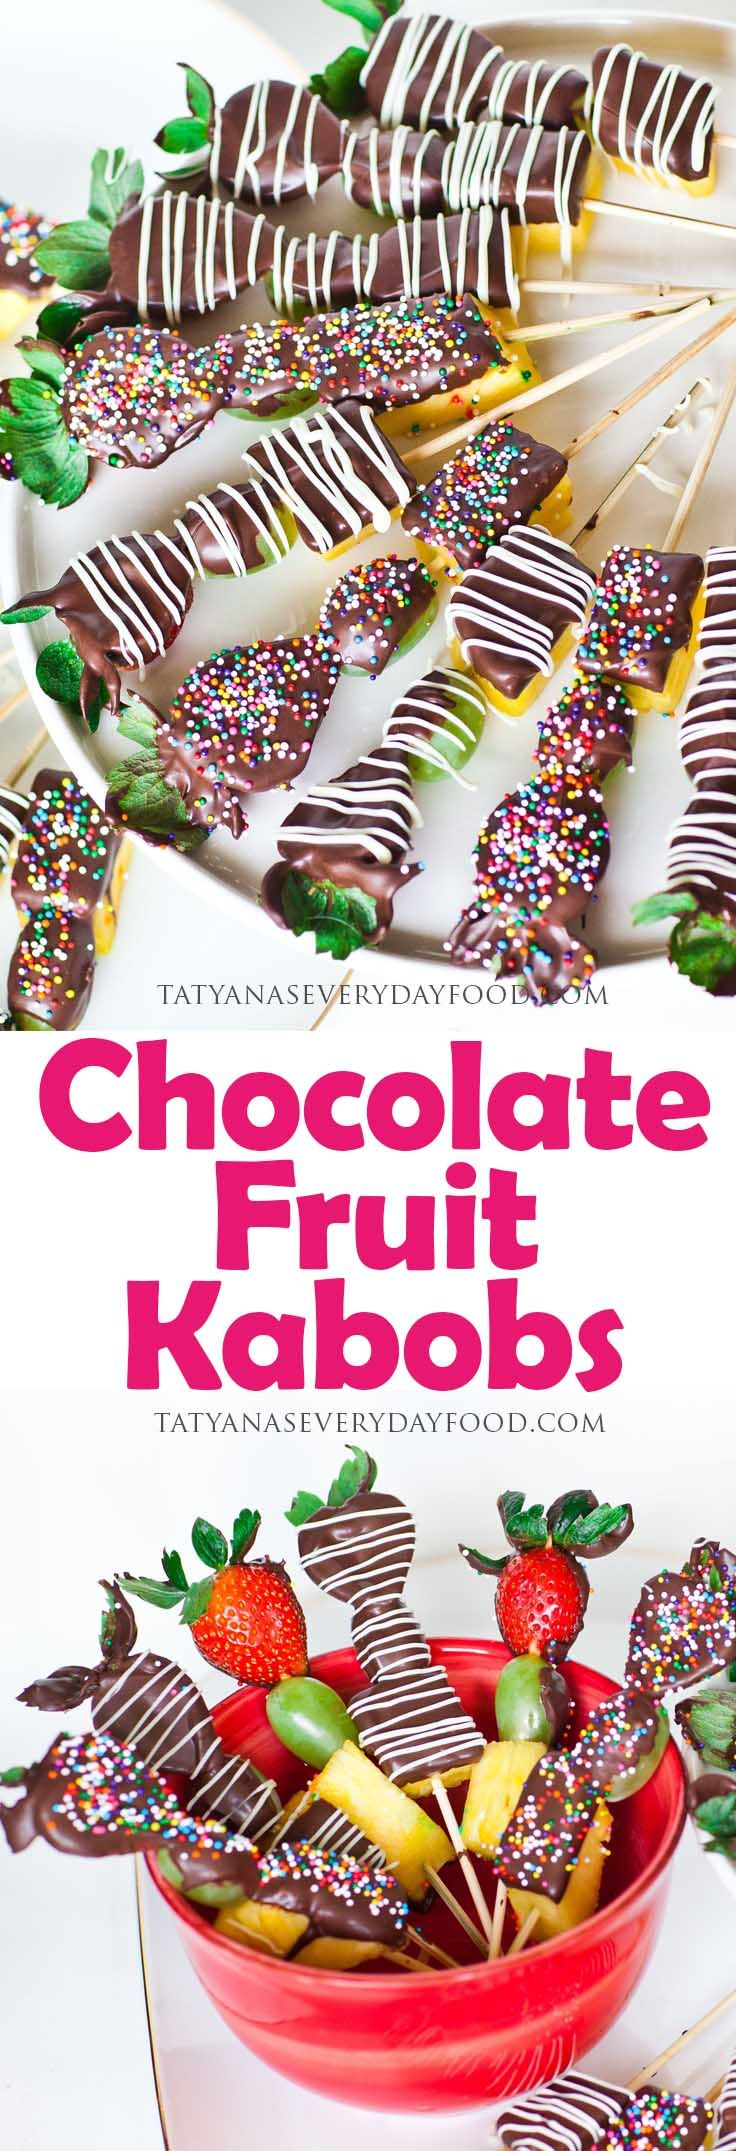 Chocolate and fruit are a combination made in food heaven! And these easy chocolate-covered fruit kabobs are perfect for any special occasion! Make them with your favorite fruit and garnish with your choice of sprinkles or more chocolate. These fruit kabobs are best served the same day or the next so enjoy and share them […]